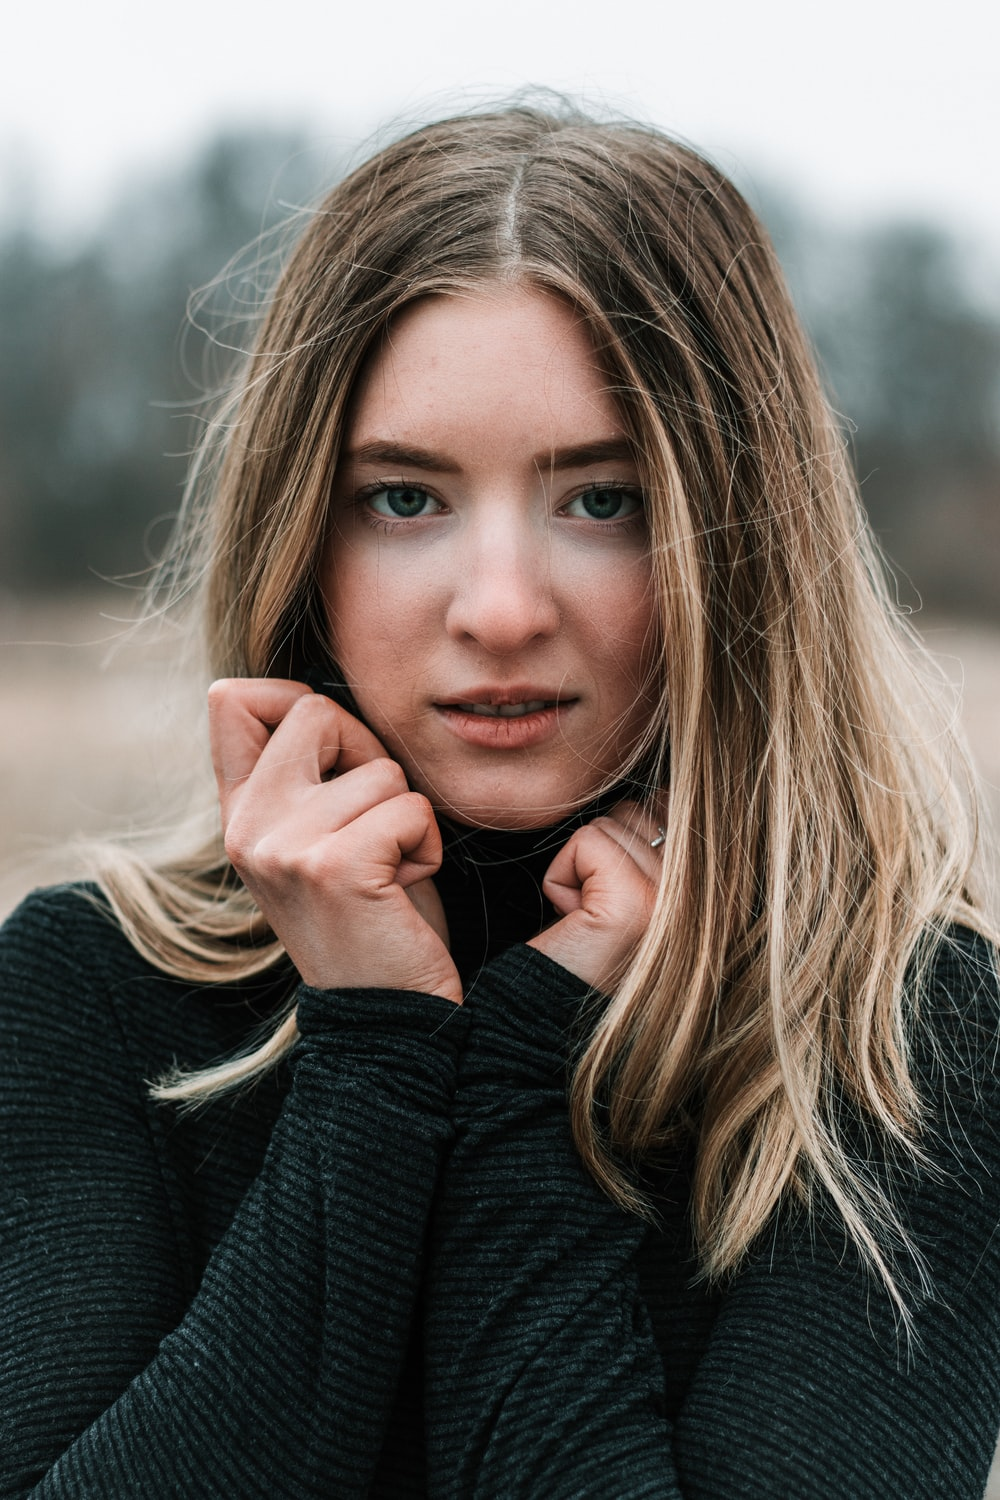 woman in black sweater holding her face